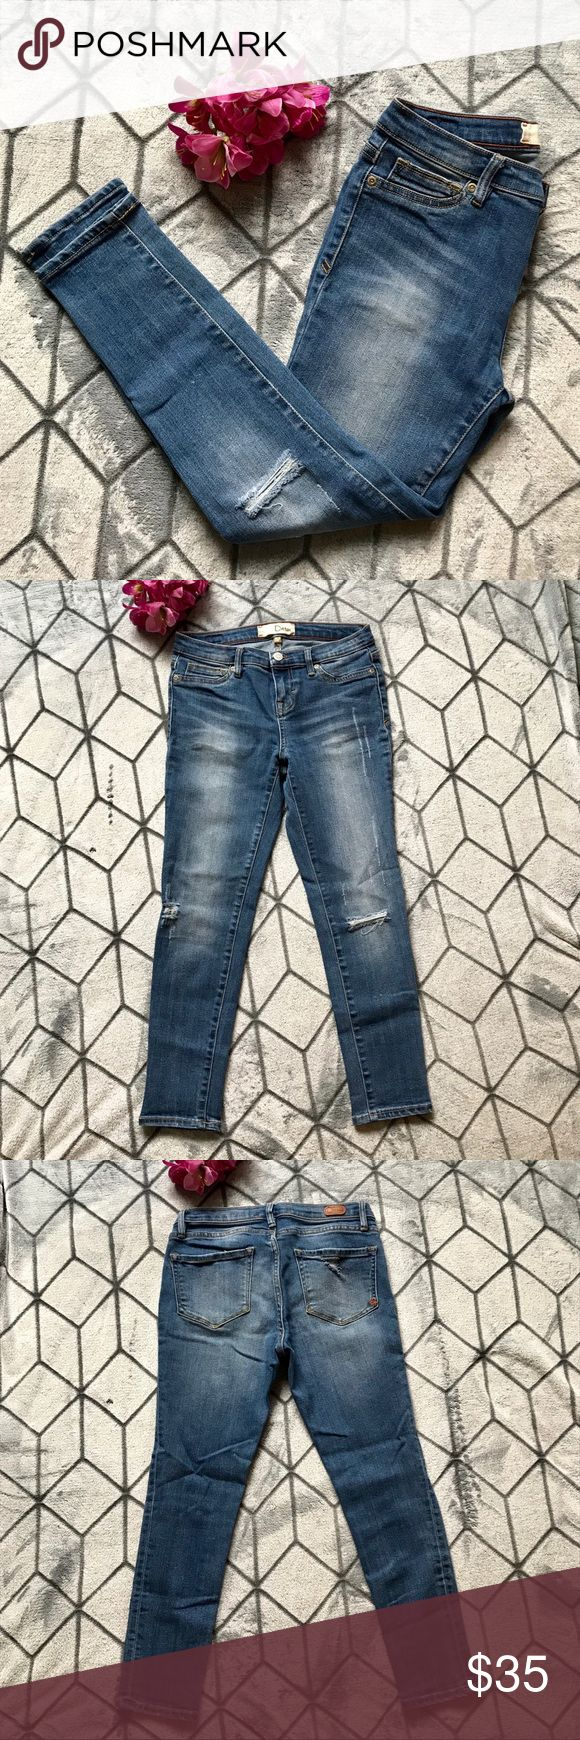 Dittos Distressed Ankle Jeans Dittos crop jeans, distressed knees, super stretchy, comfortable and flattering. 23in inseam. In excellent condition. Dittos Jeans Ankle & Cropped